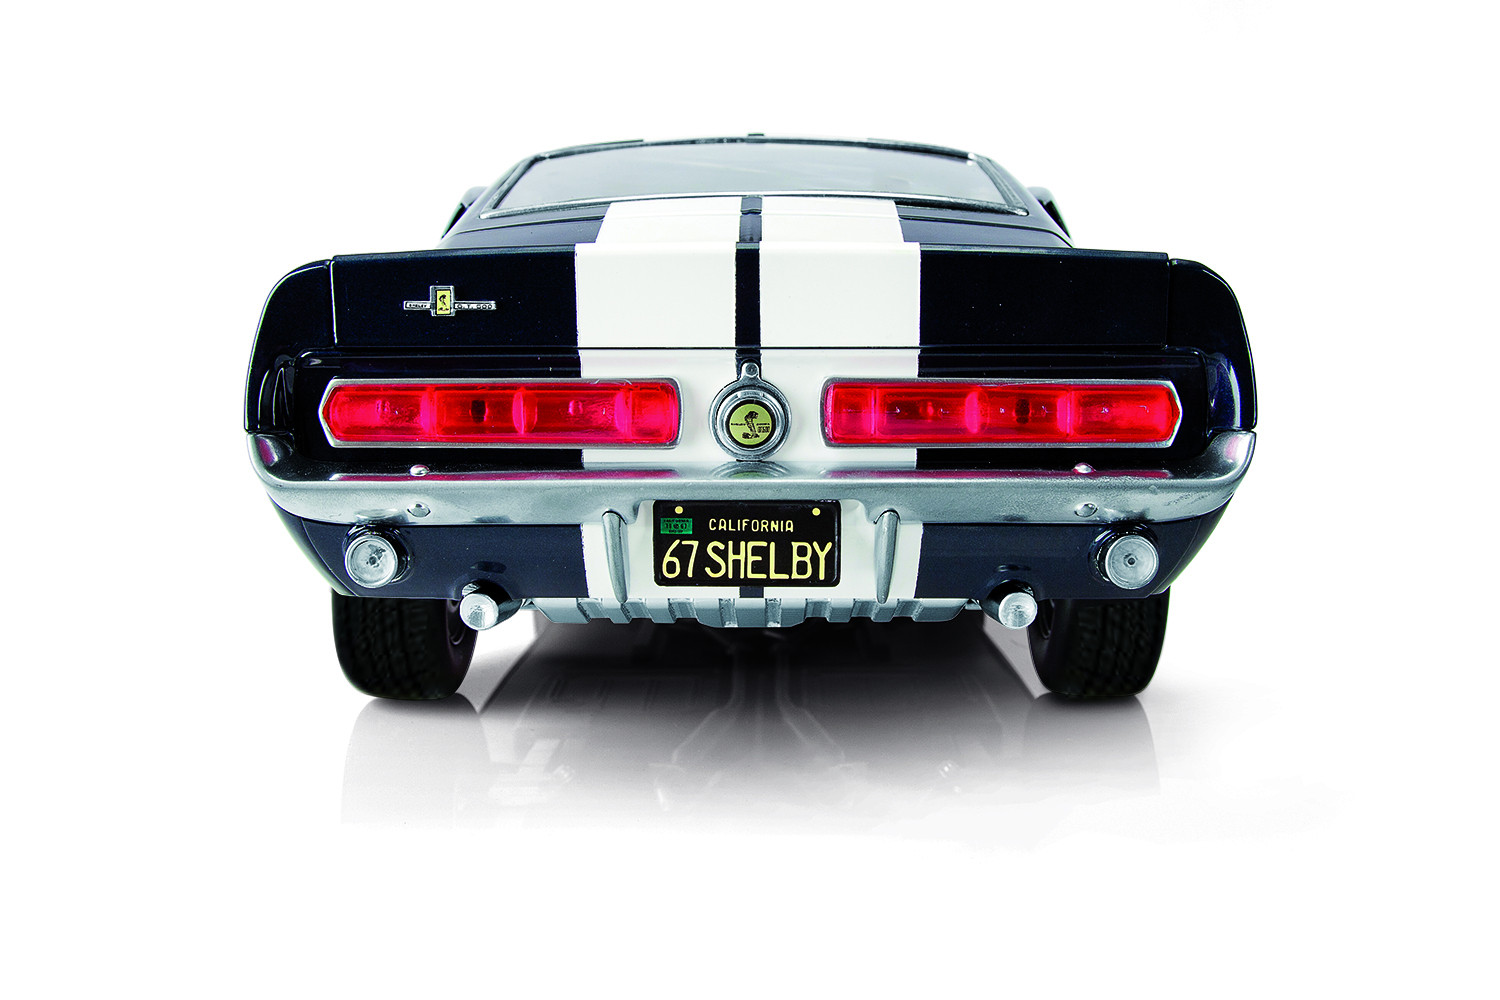 Ford Shelby Mustang Model Modelspace